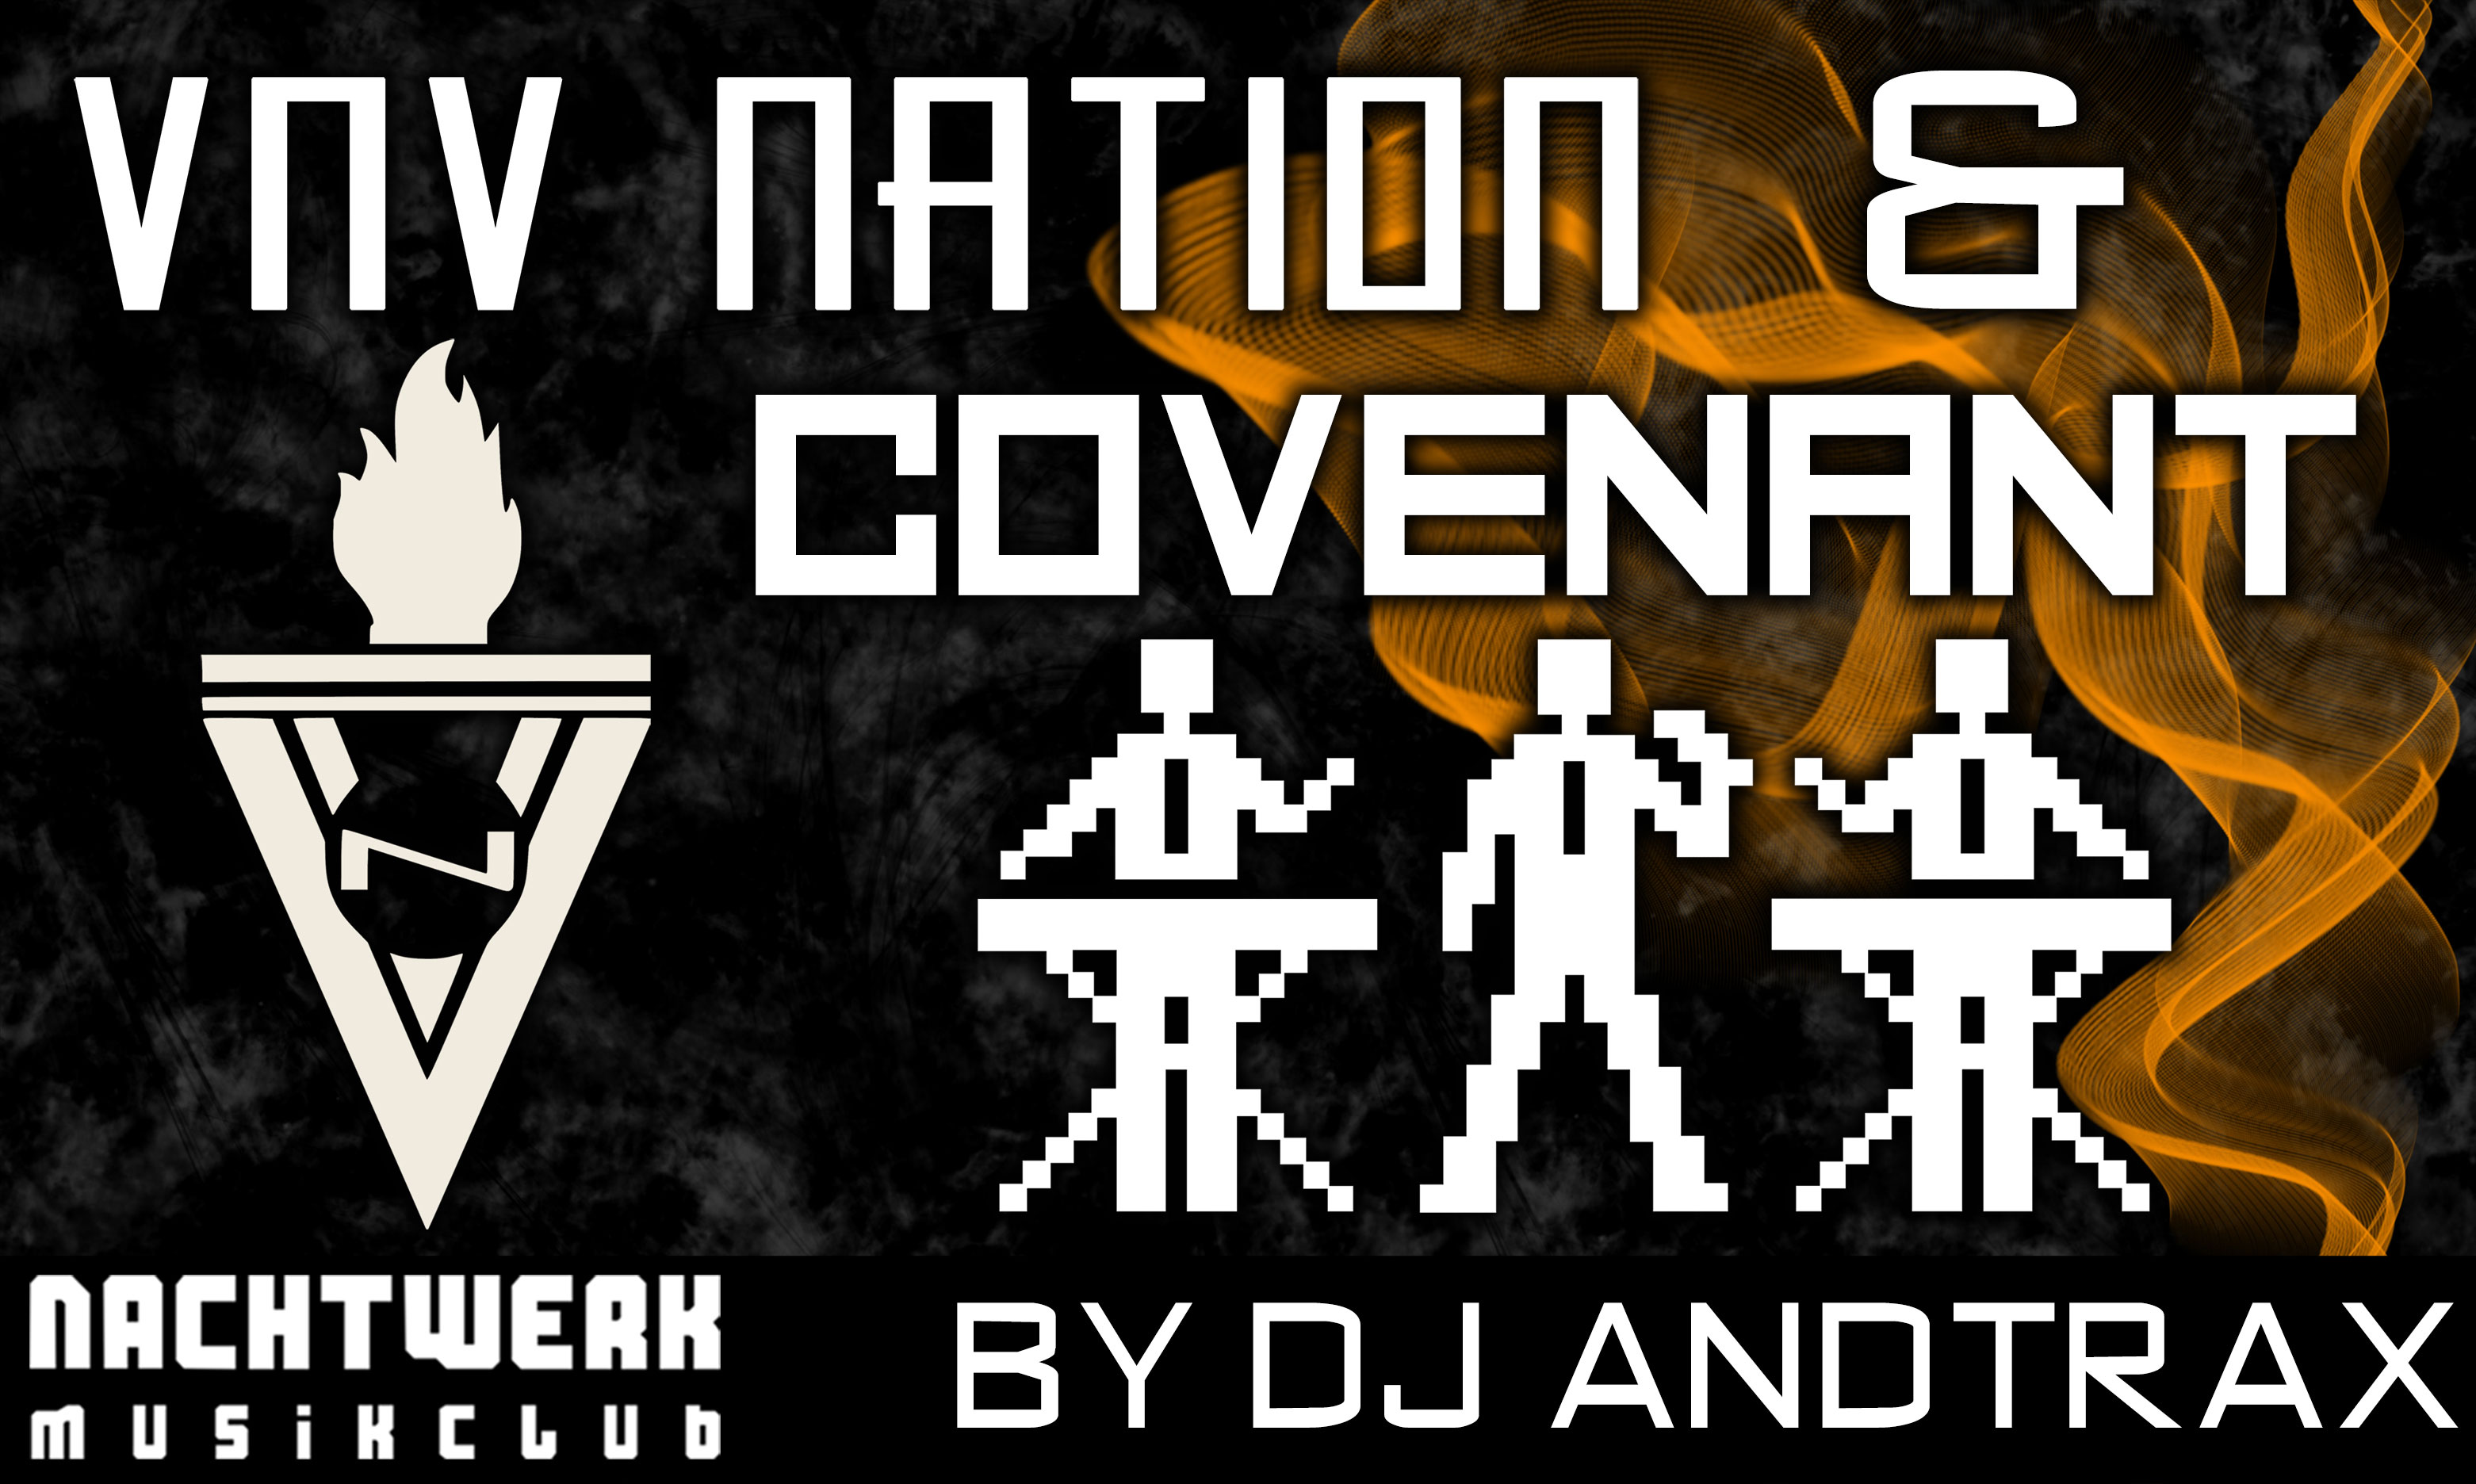 VNV Nation & Covenant